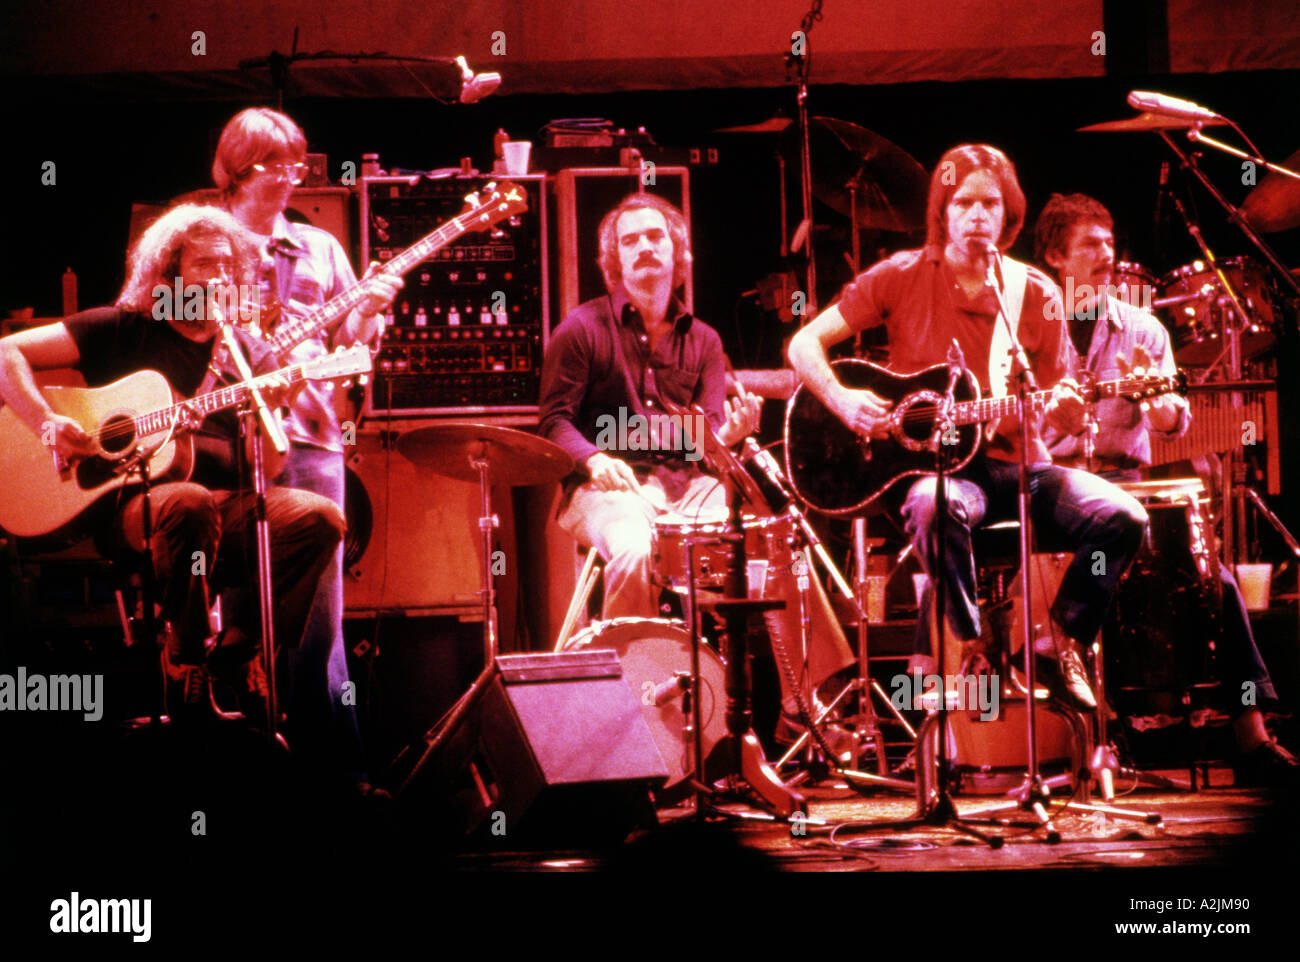 a history of the grateful dead a modern rock band The grateful dead's followers cut across cultural, ethnic and economic divides, but are joined by a shared love of the band's shape-shifting music, if not its counterculture-fueled ethos.